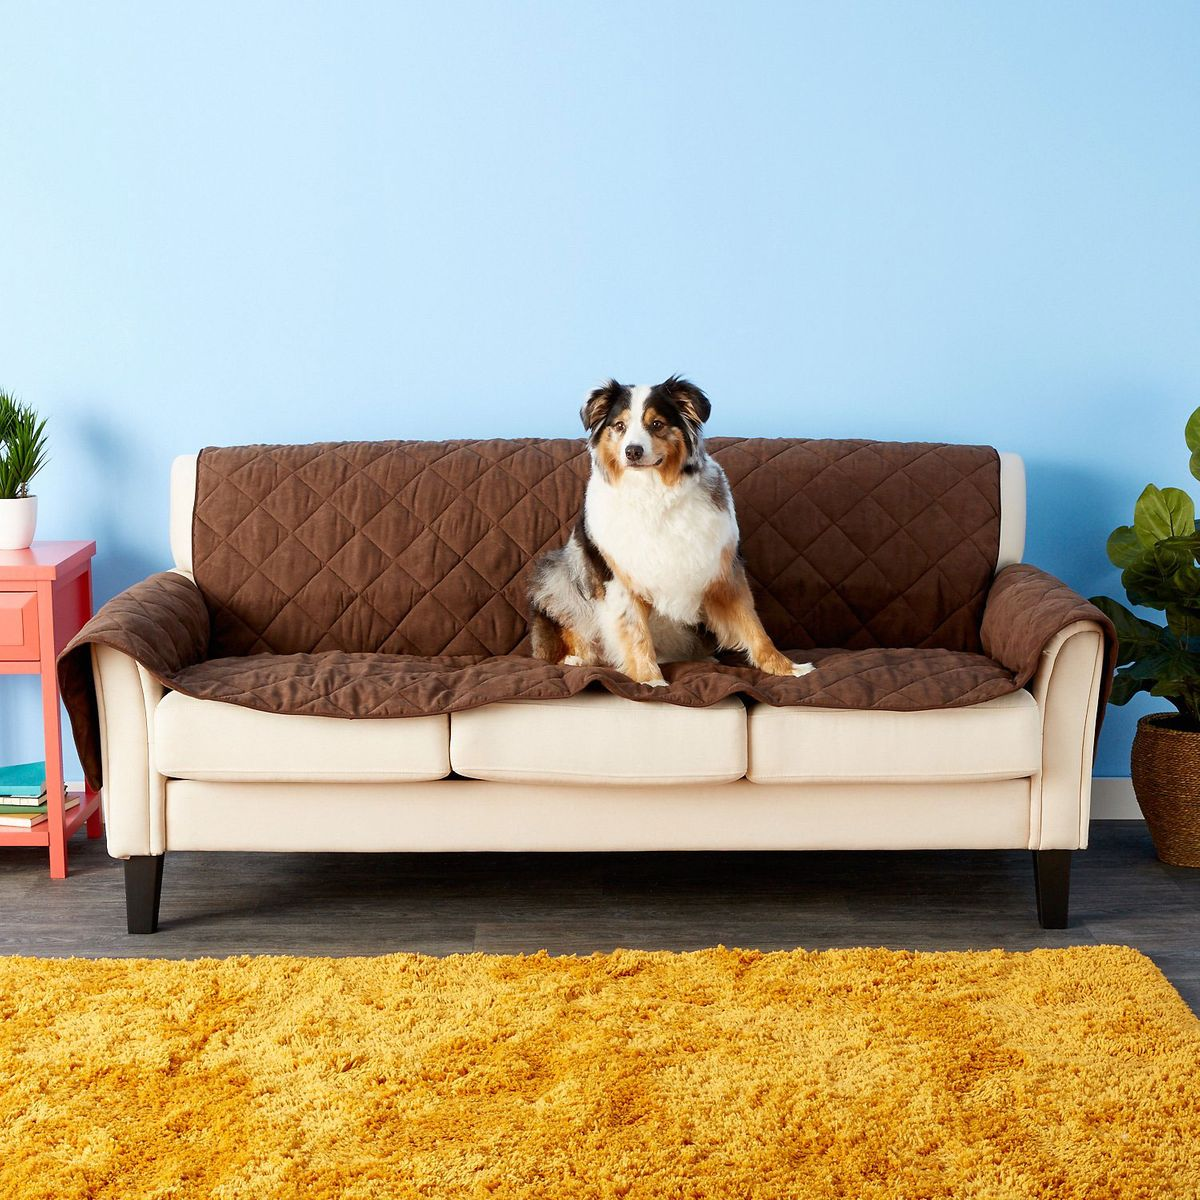 25 Best Pet-Safe Cleaning Products for Pet Messes